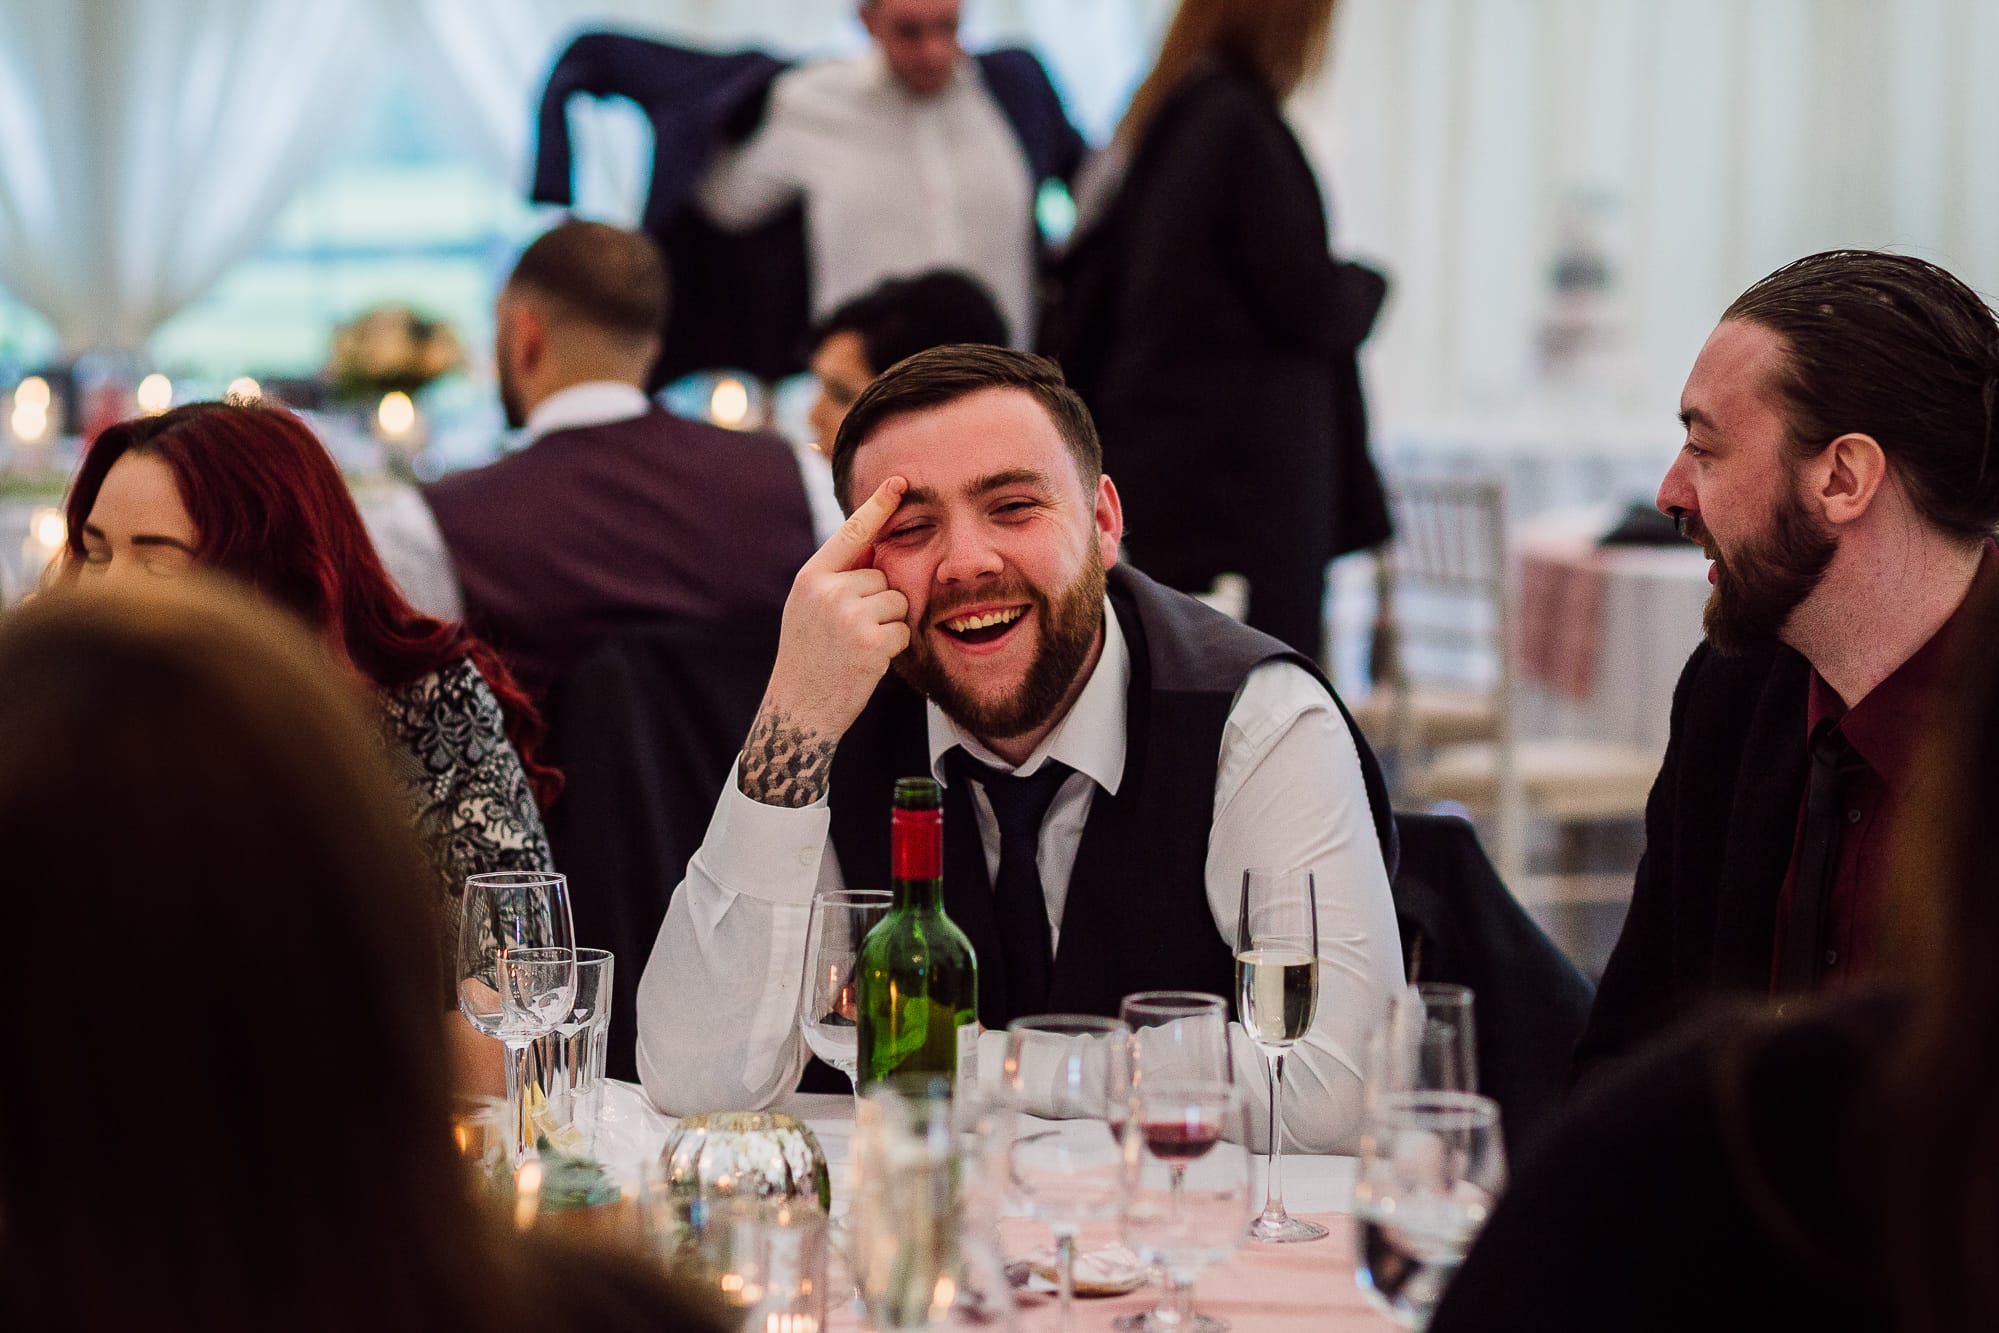 Guest laughing at the dinner table